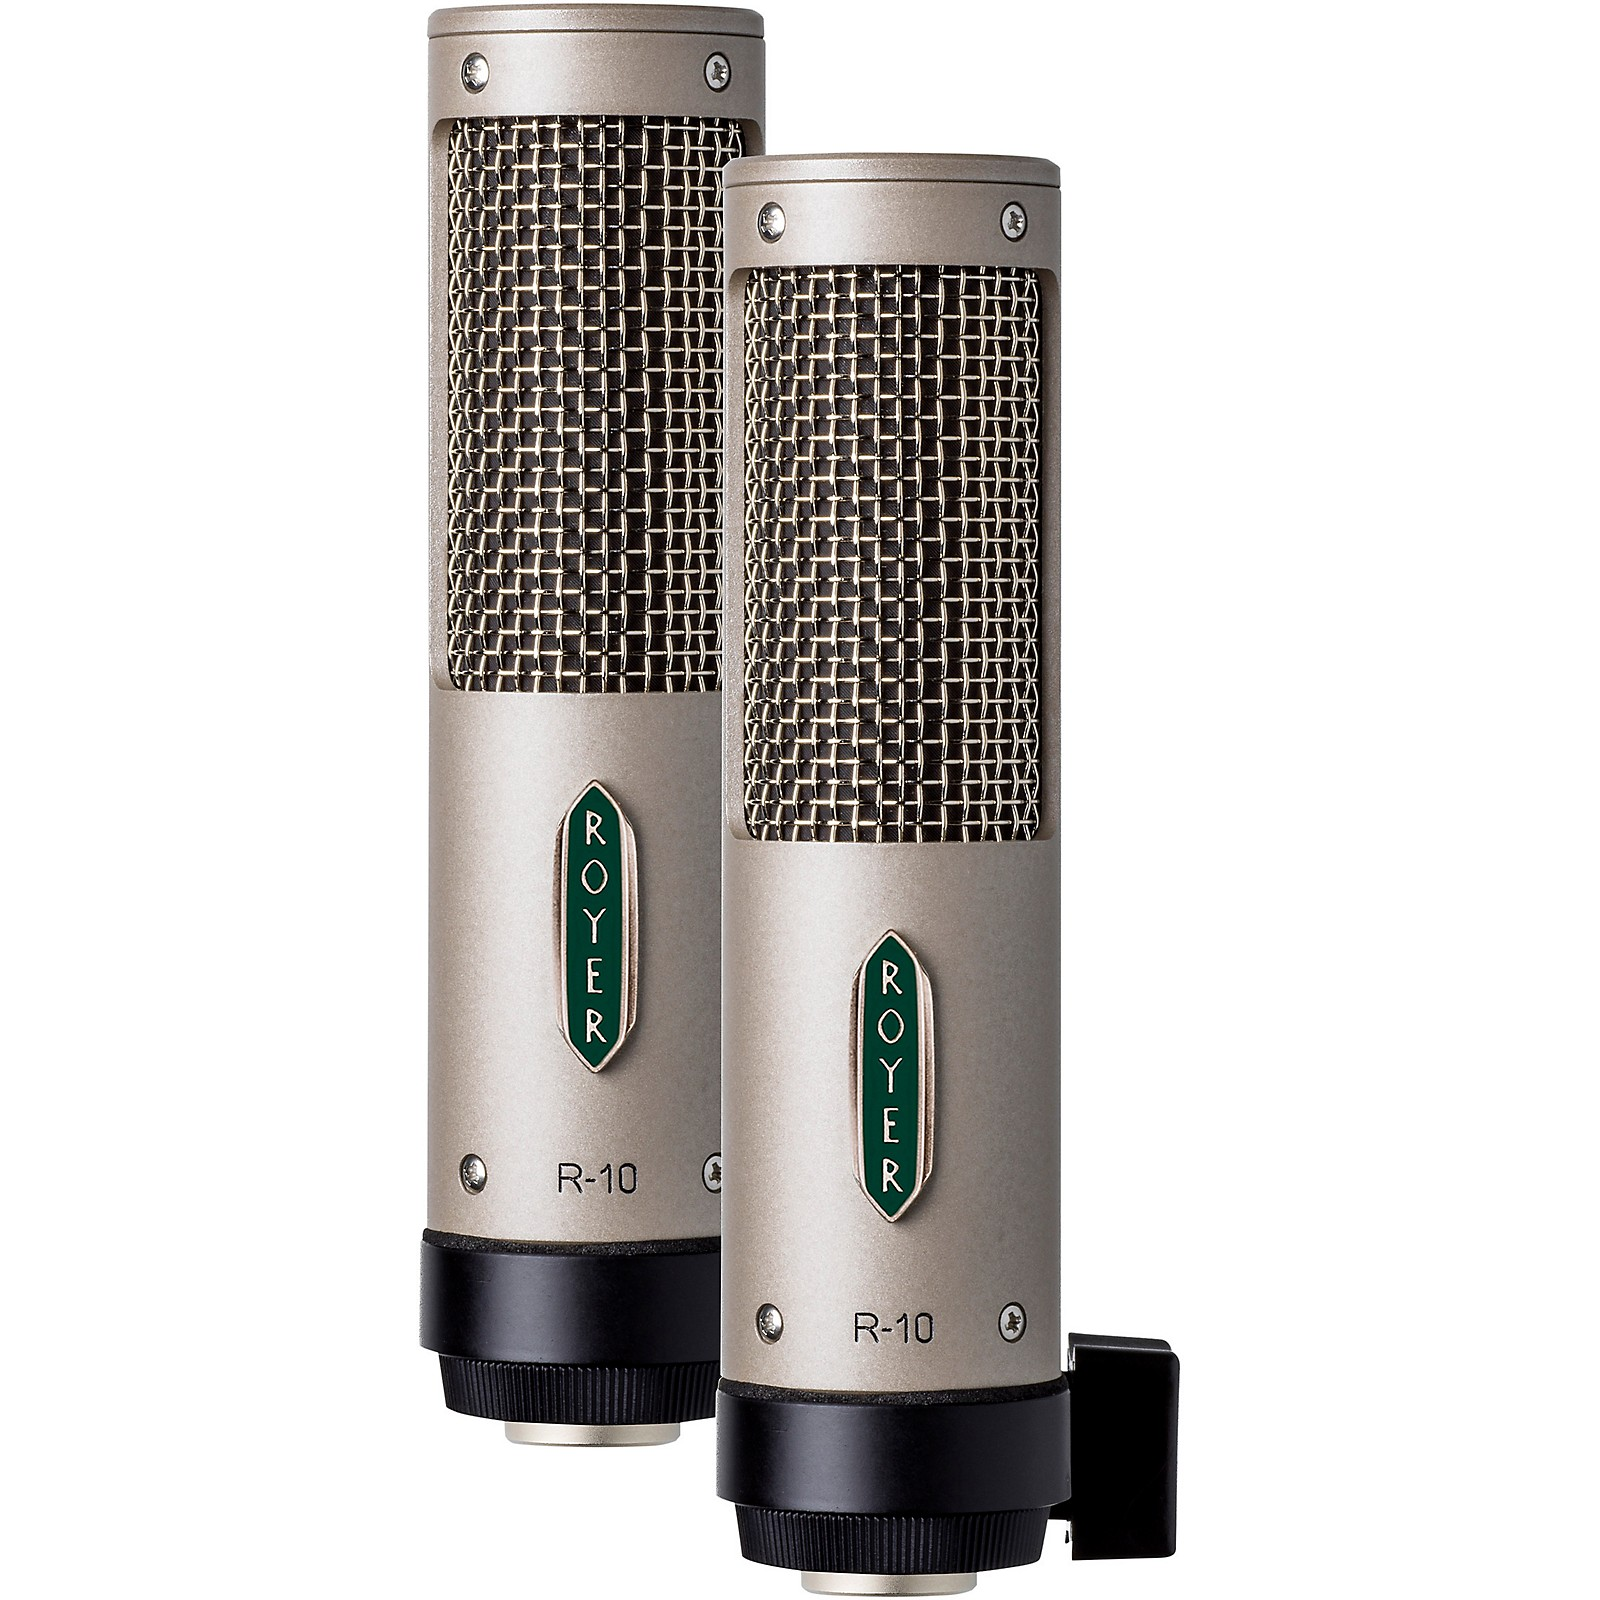 Royer R-10 Ribbon Microphone Matched Pair